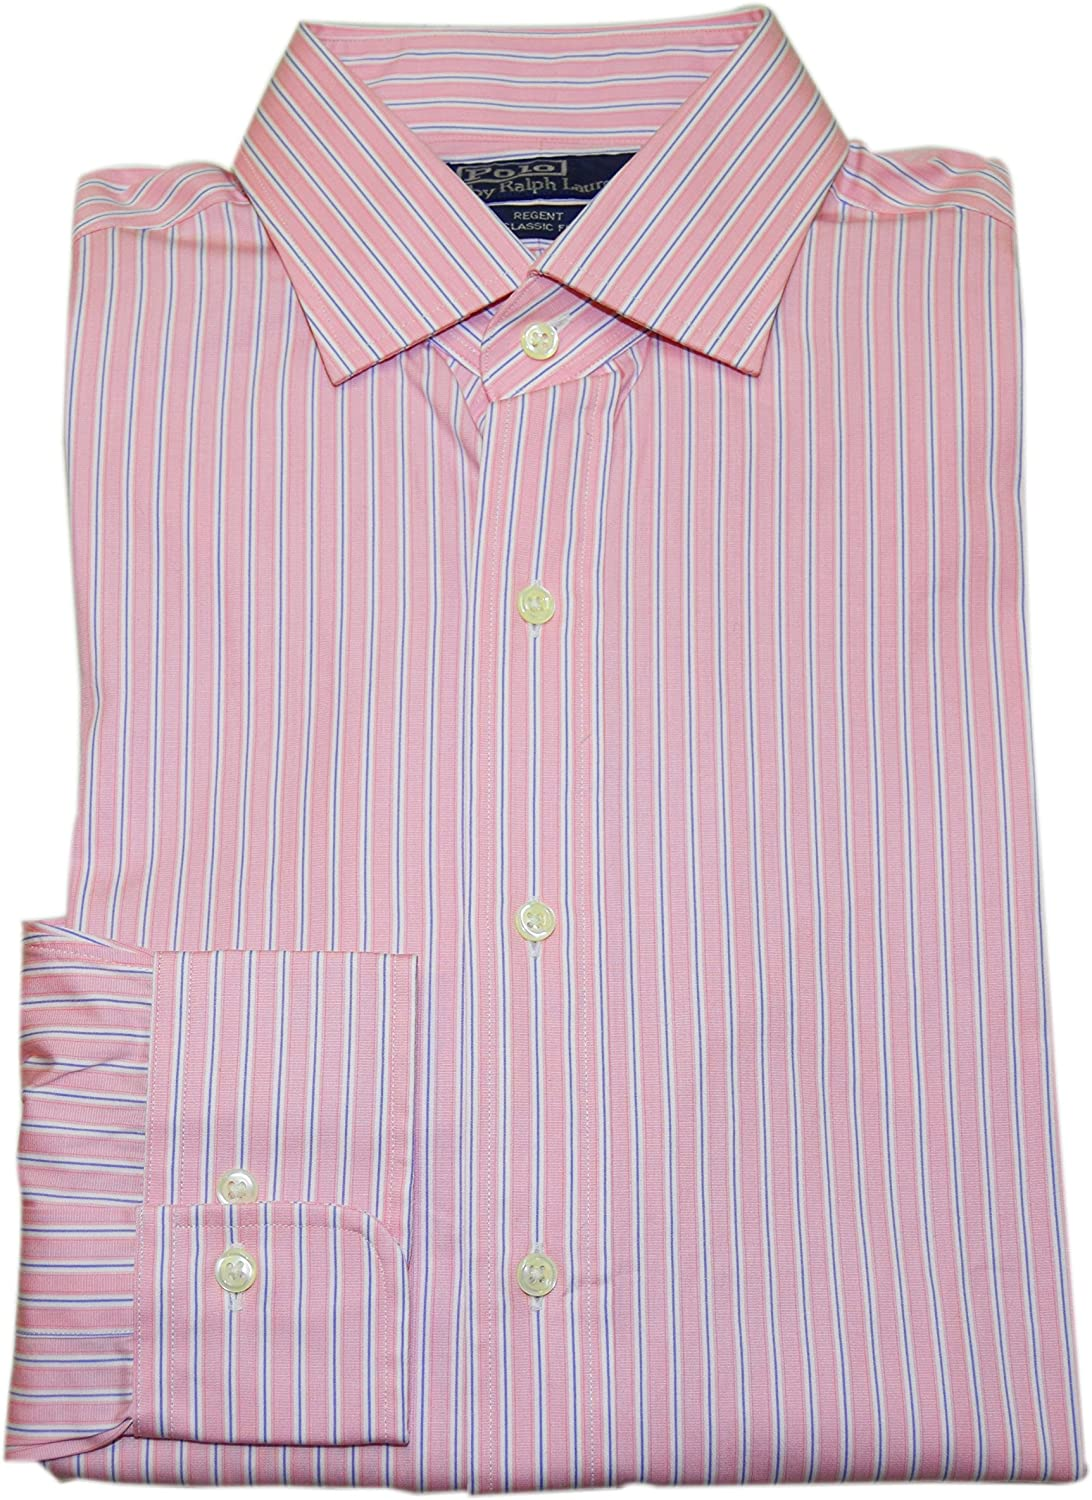 Polo Ralph Lauren Men/'s Regent Classic Fit Spread Collar Dress Shirt-Pink